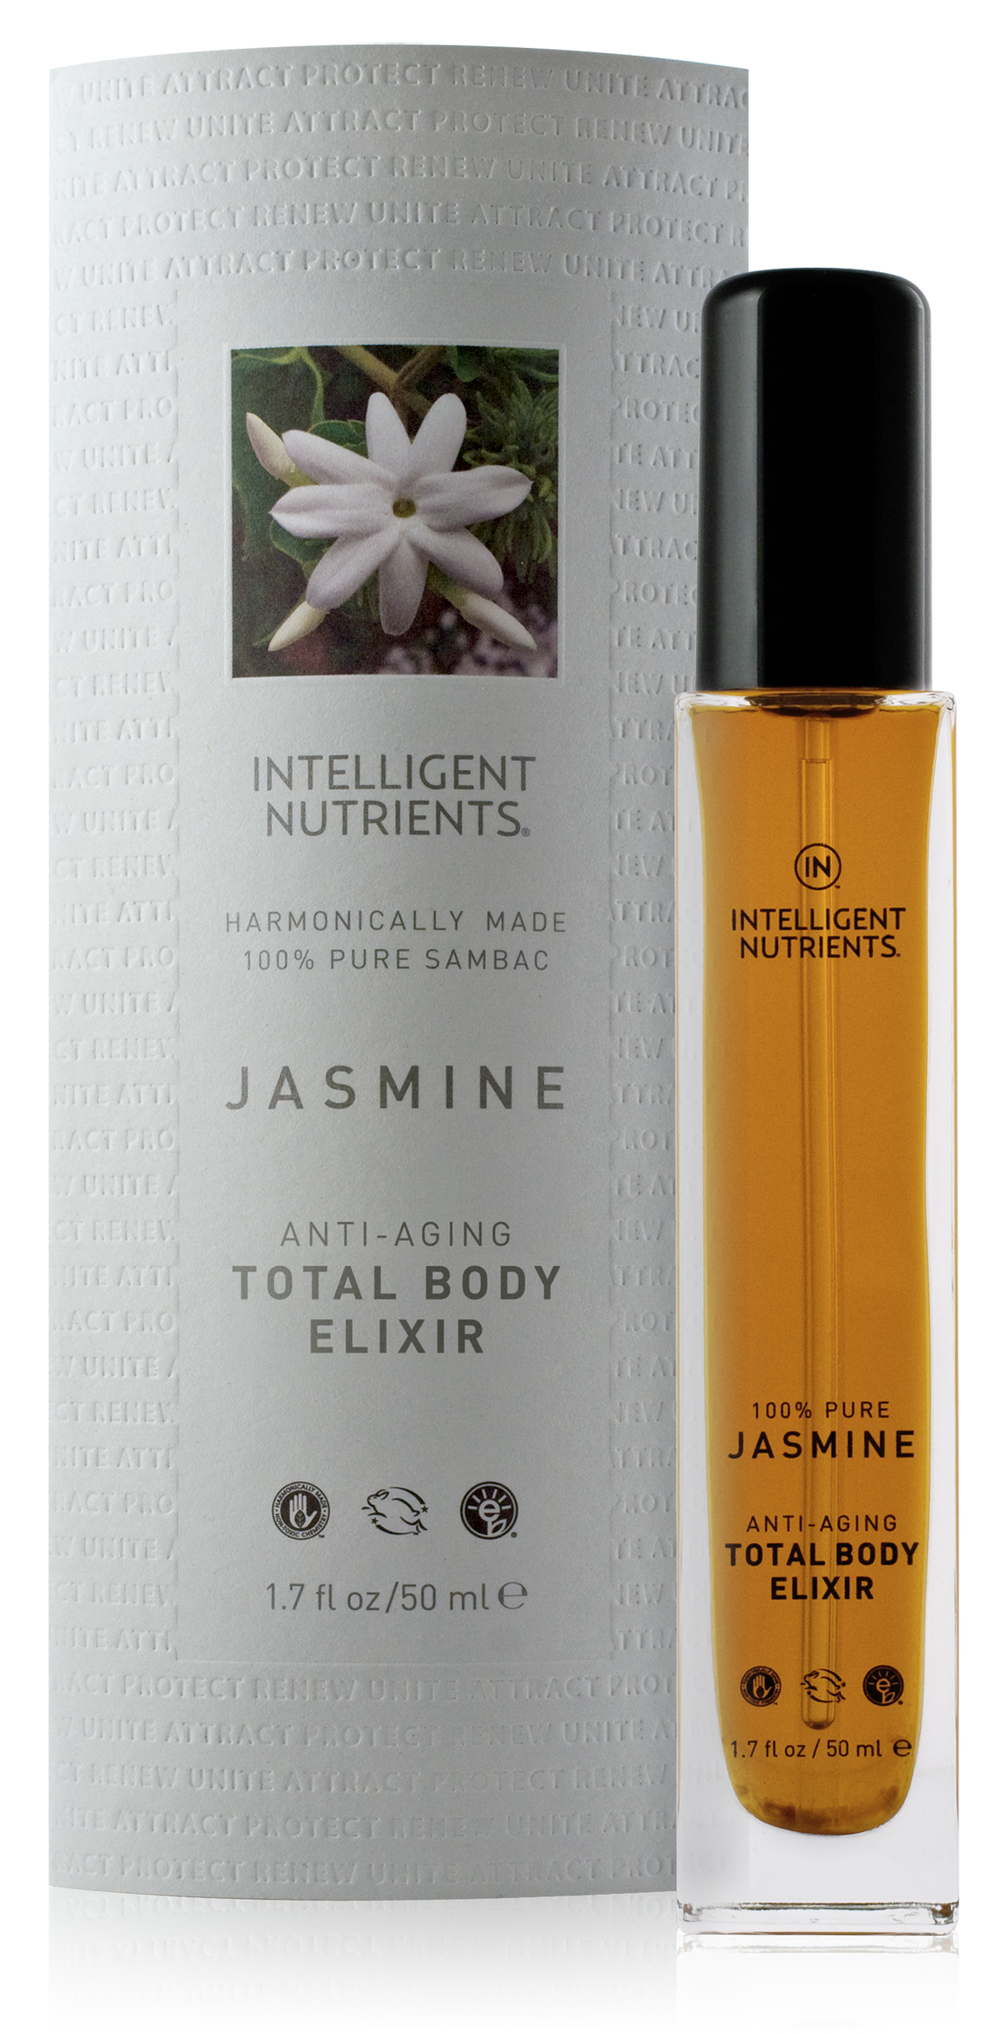 Jasmine Total Body Elixir (DKK715/50ml)